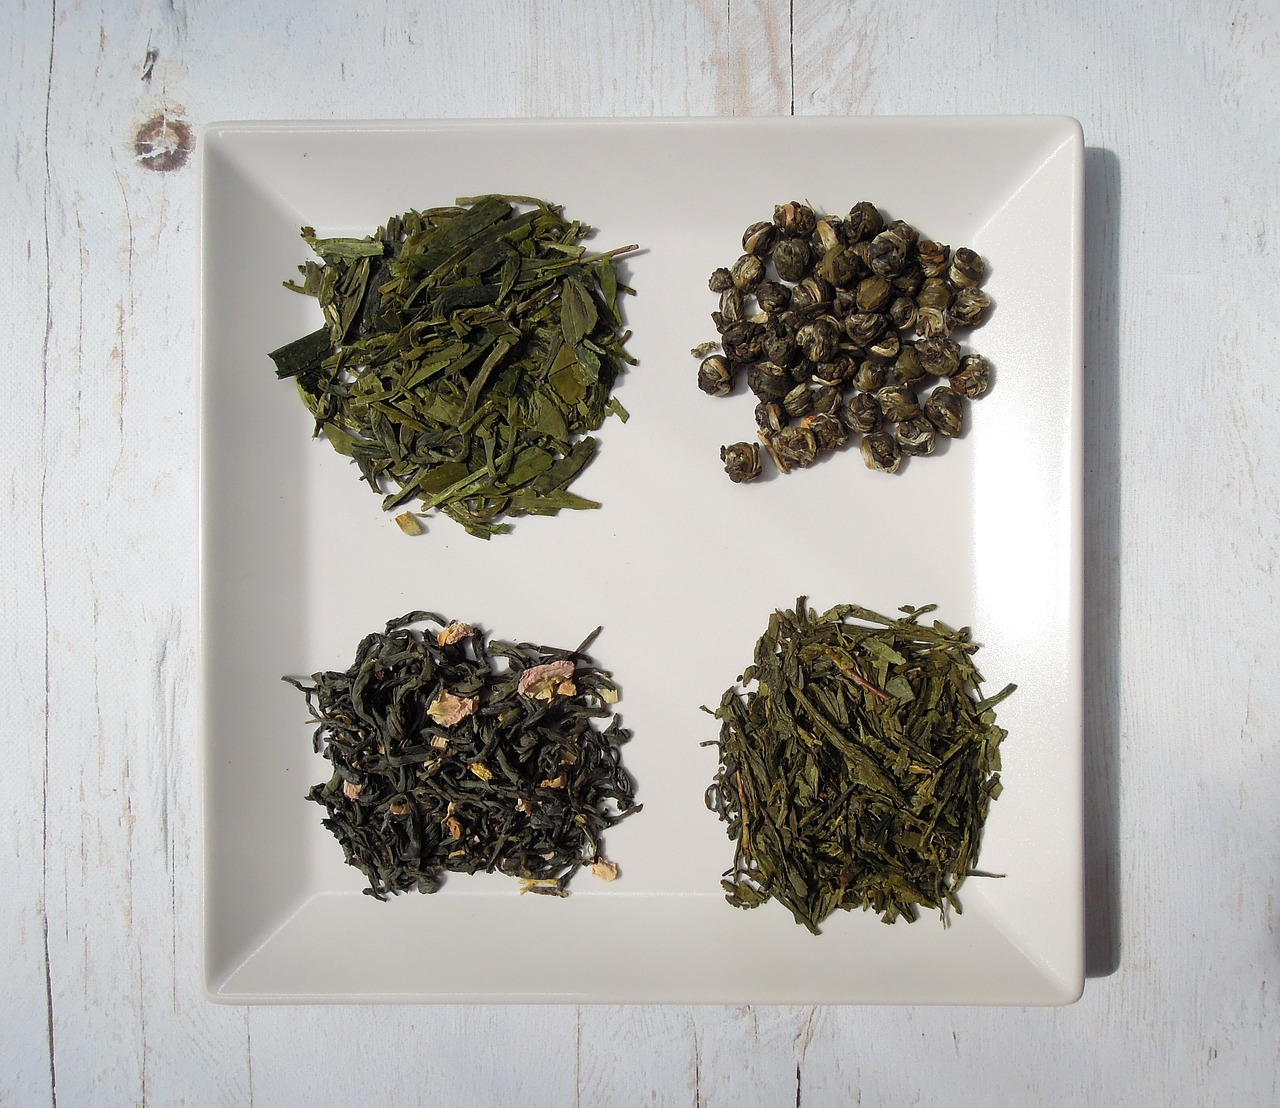 Green tea blends in dishes on a wood table